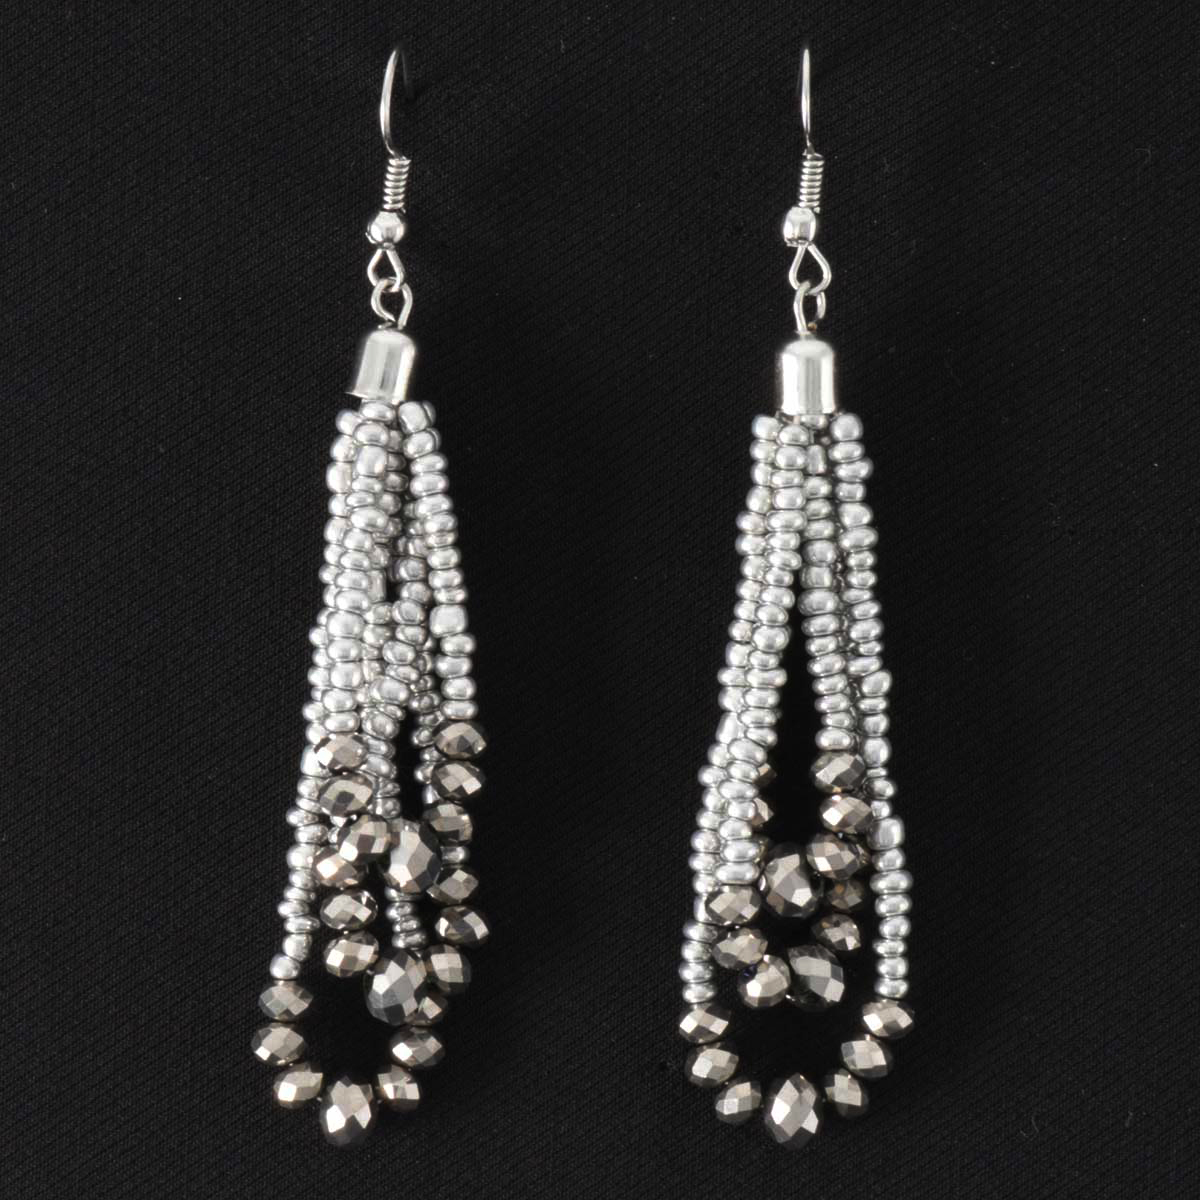 SILVER BEAD/CRYSTAL EARRING